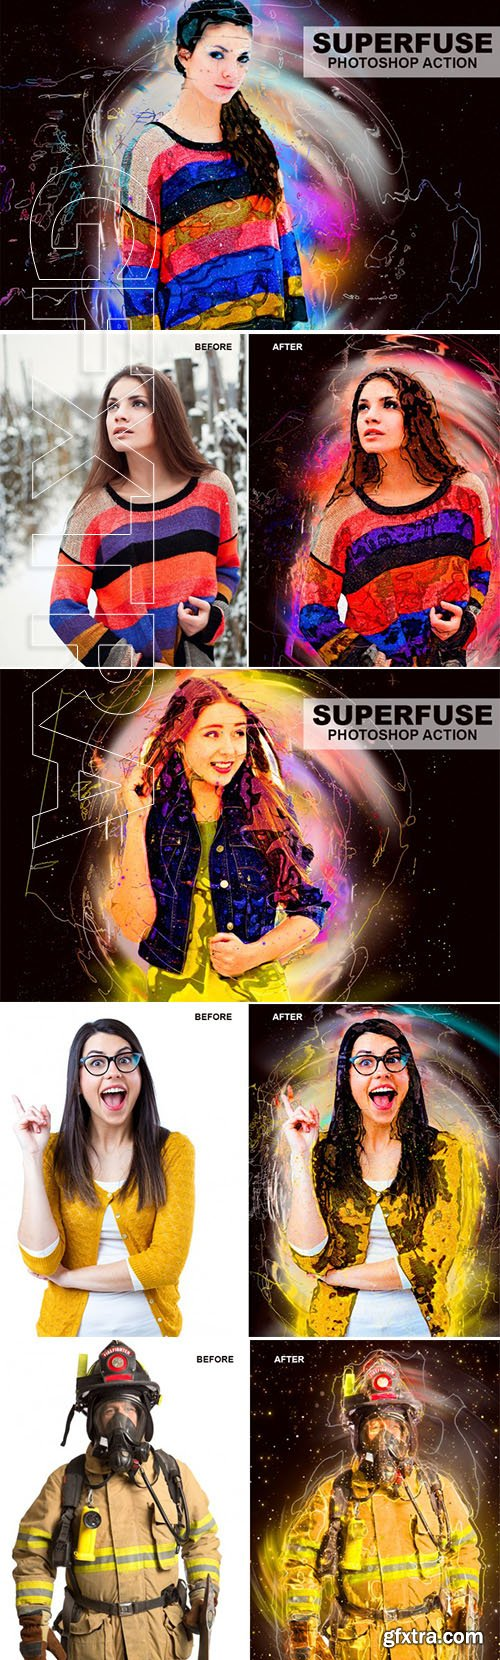 Graphicriver - Superfuse Photoshop Action 21965650